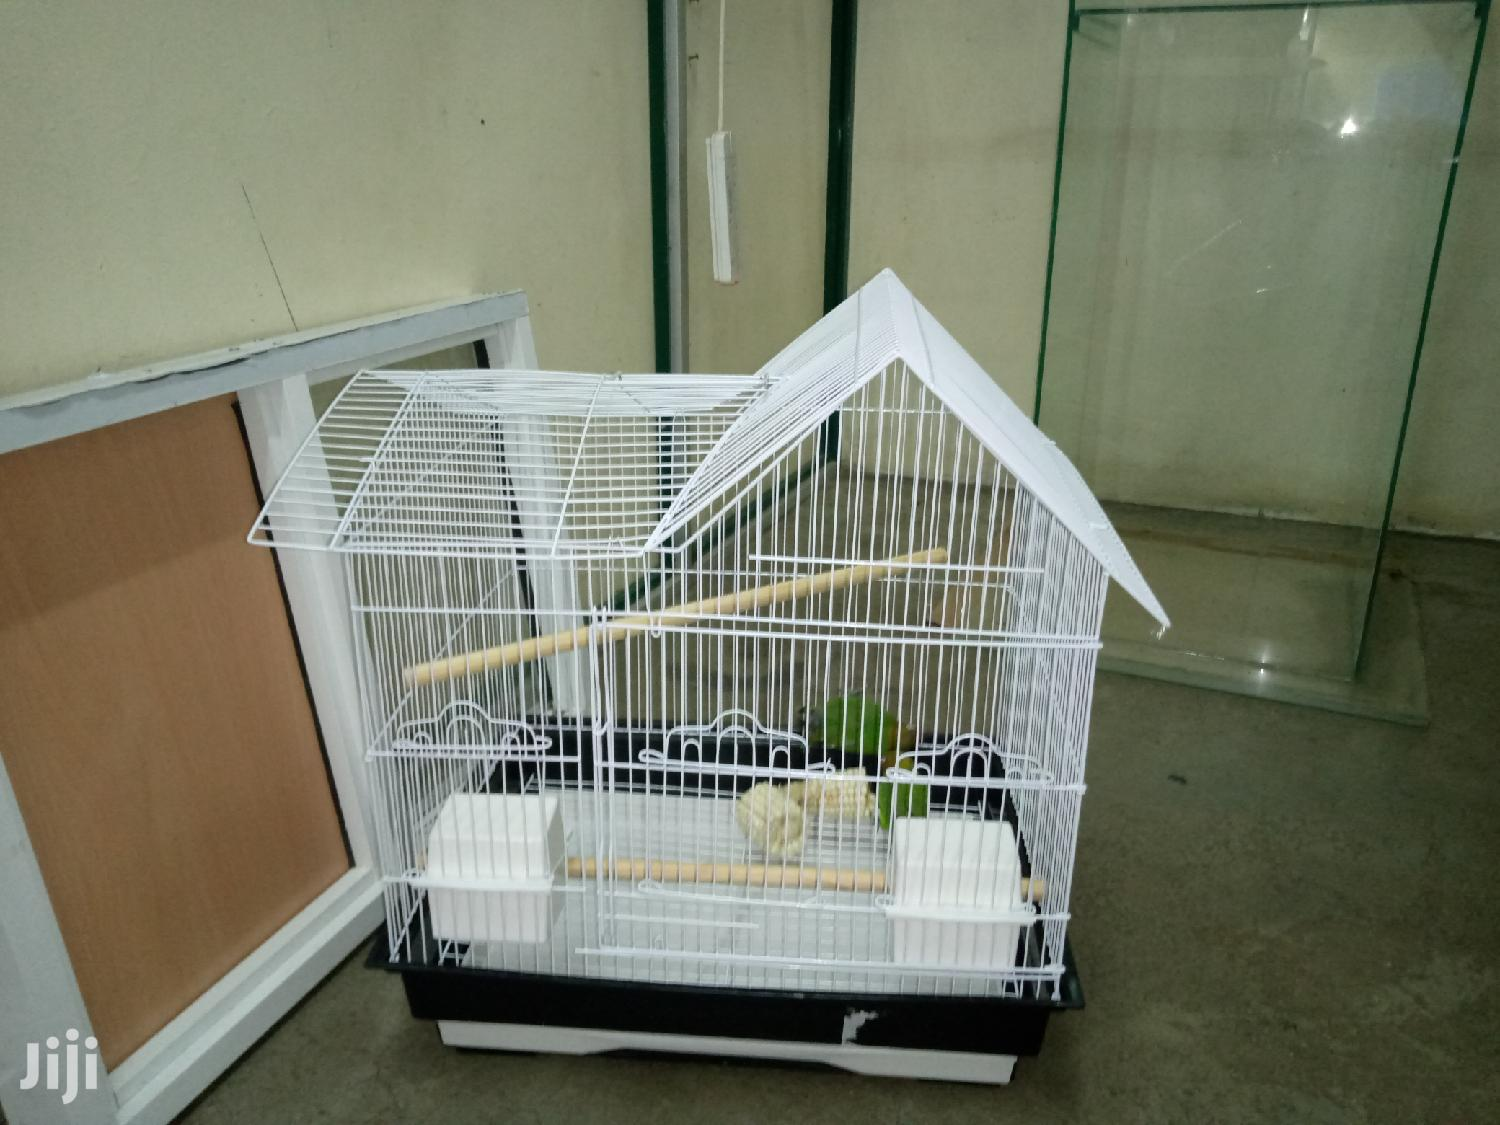 Cages For Birds | Pet's Accessories for sale in Nairobi Central, Nairobi, Kenya